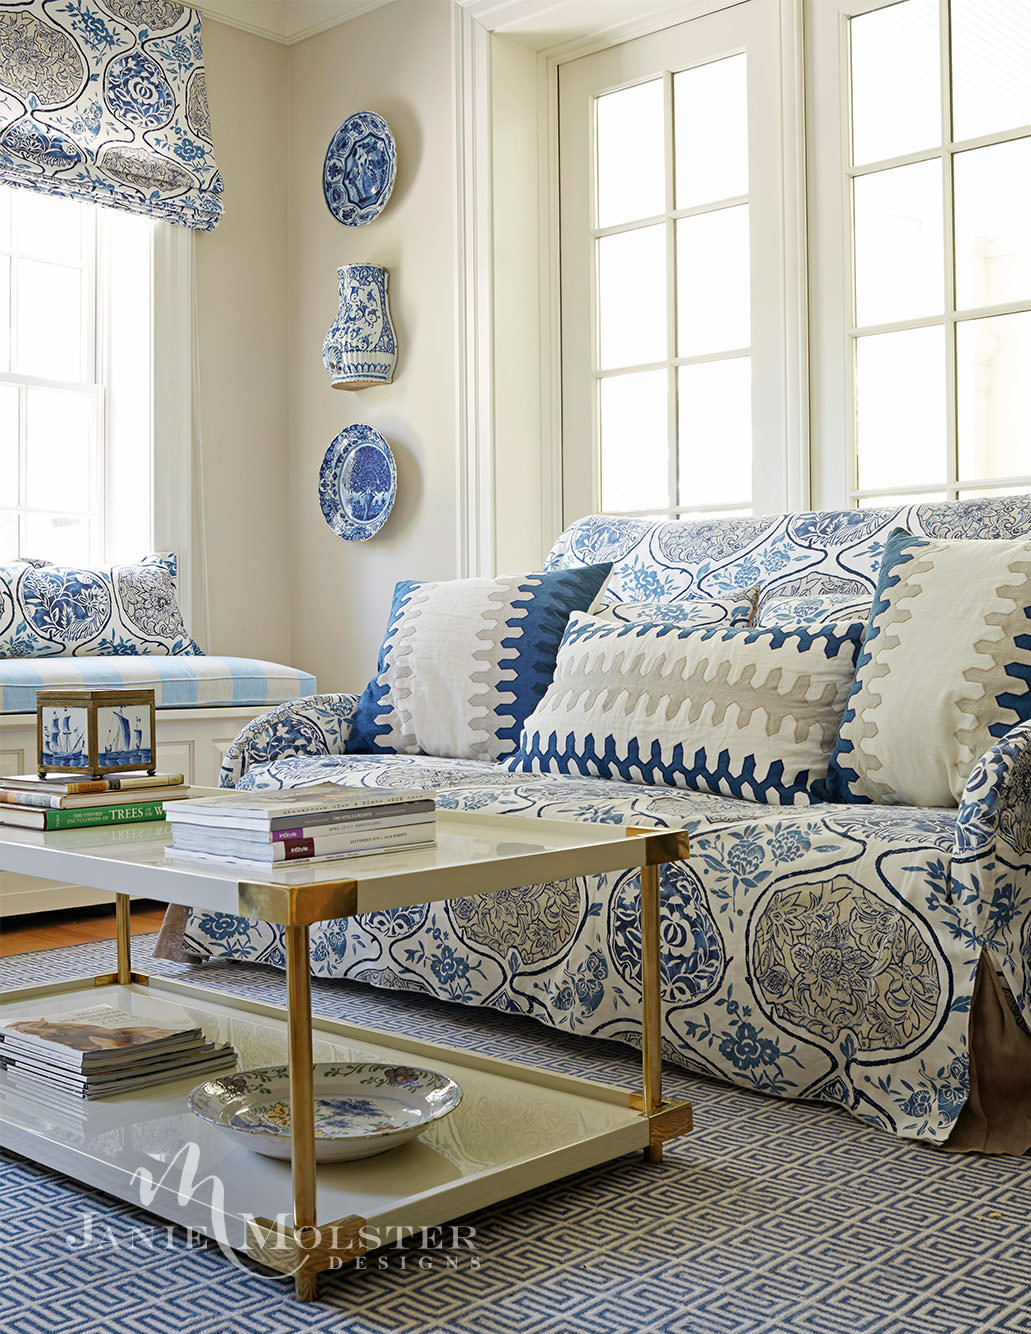 Southern charm janie molster designs for Southern designs